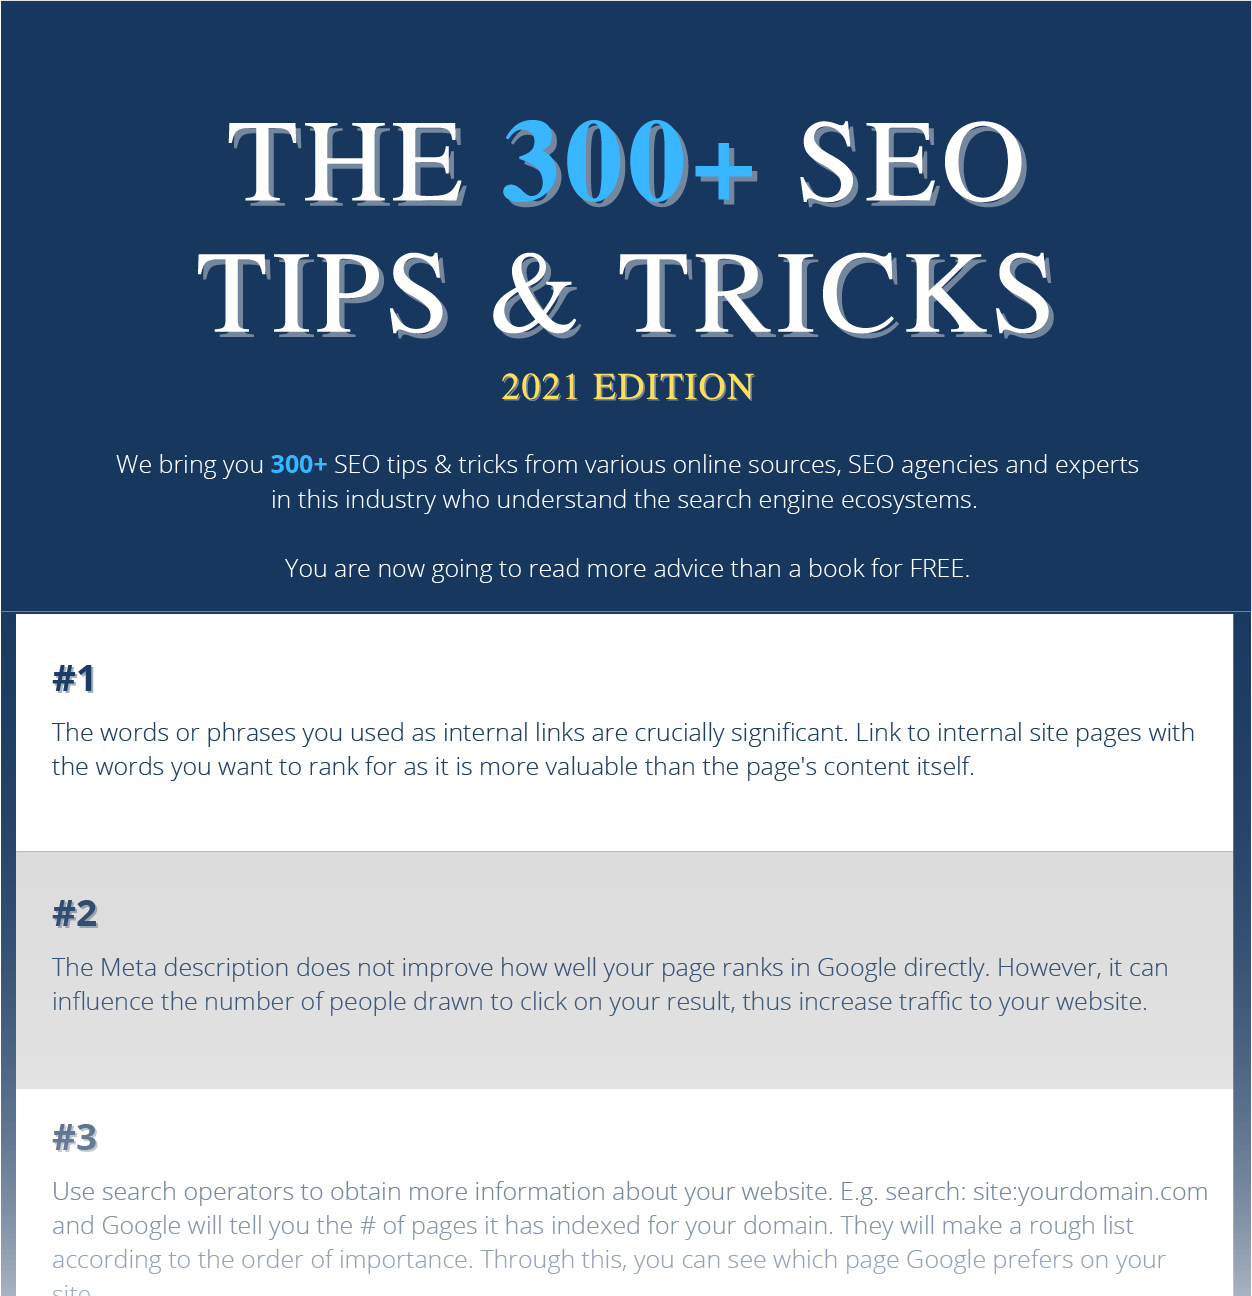 Download 300+ SEO Tips & Tricks - Outrankco